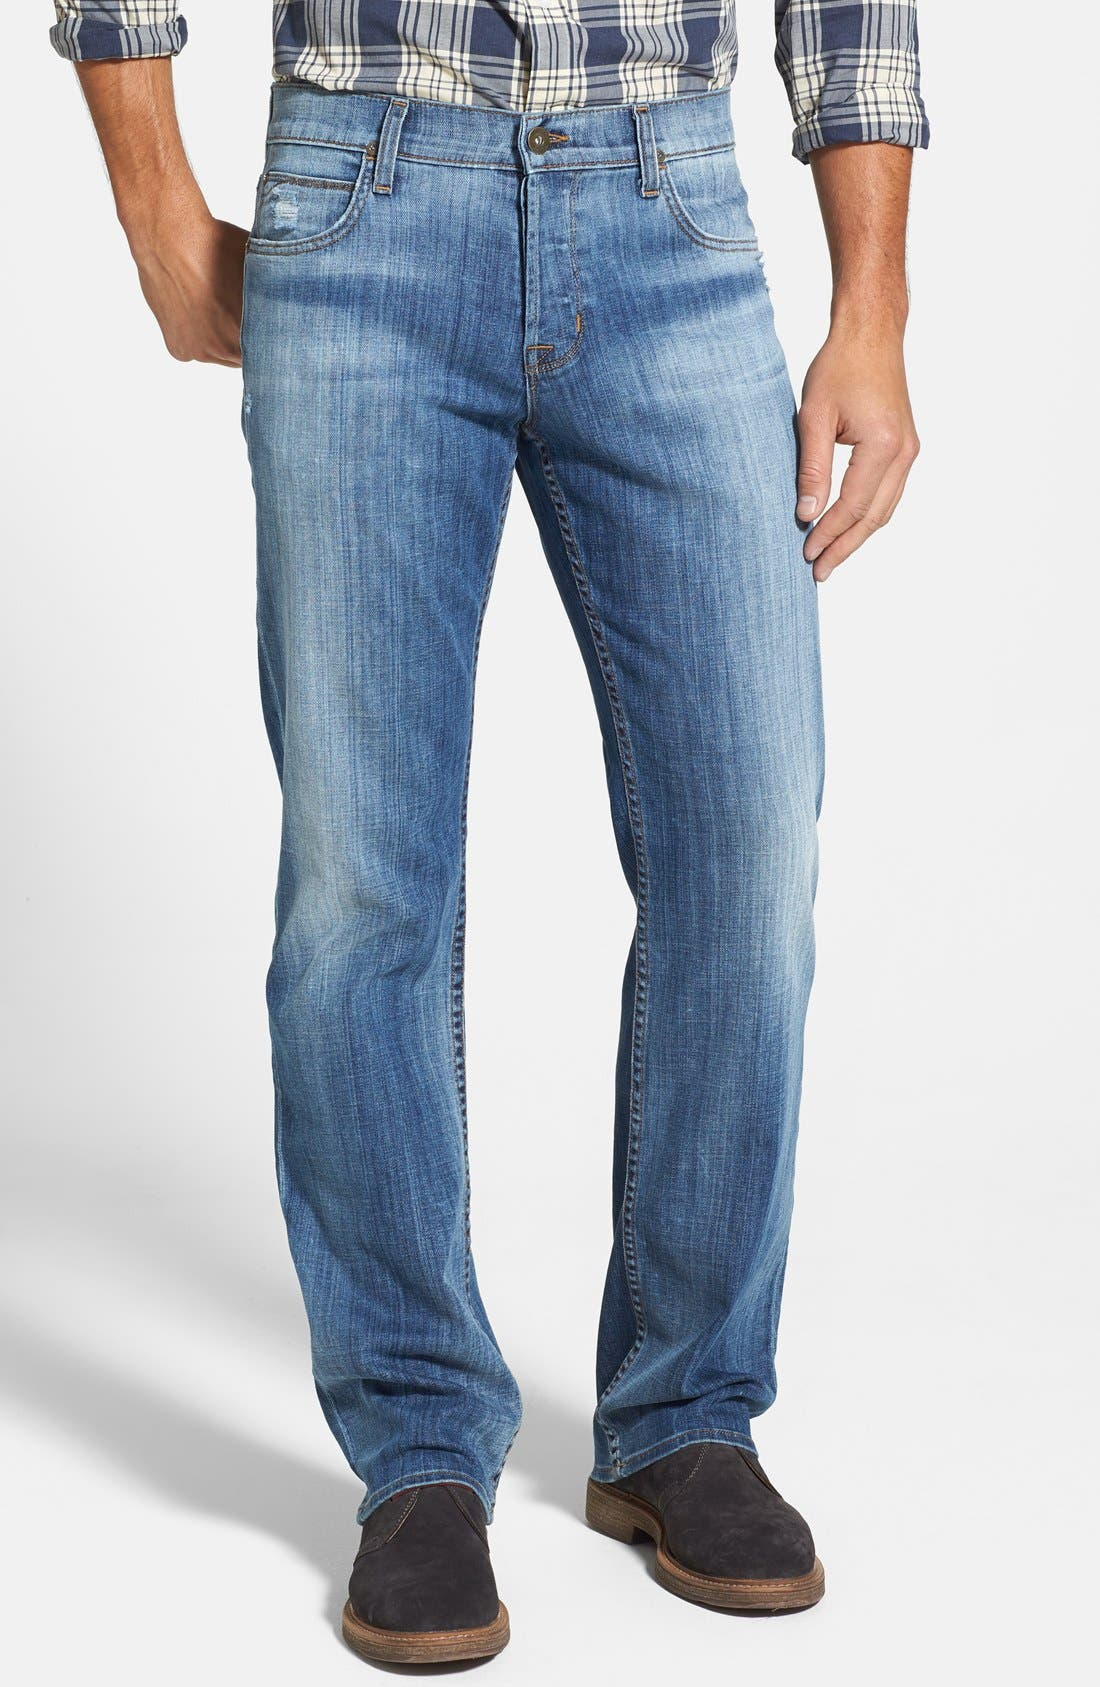 Alternate Image 1 Selected - Hudson Jeans 'Wilde' Relaxed Fit Jeans (Melt Into The Sea)